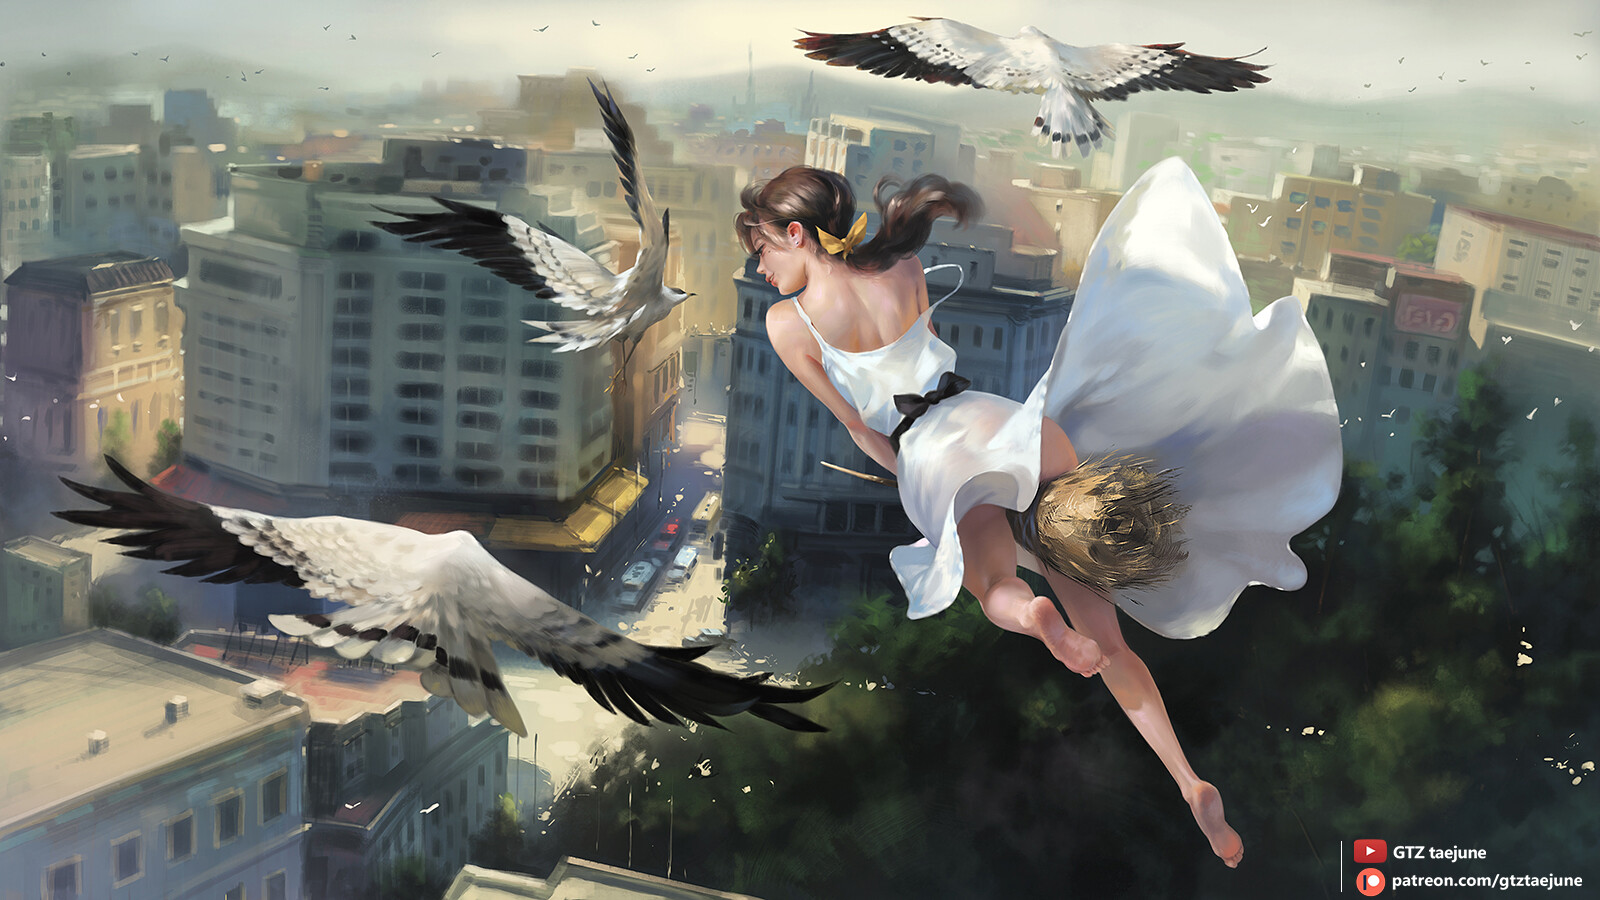 General 1600x900 ponytail fantasy girl dress white dress witch broom witches broom barefoot city birds fantasy art artwork drawing digital art illustration Taejune Kim foot sole people